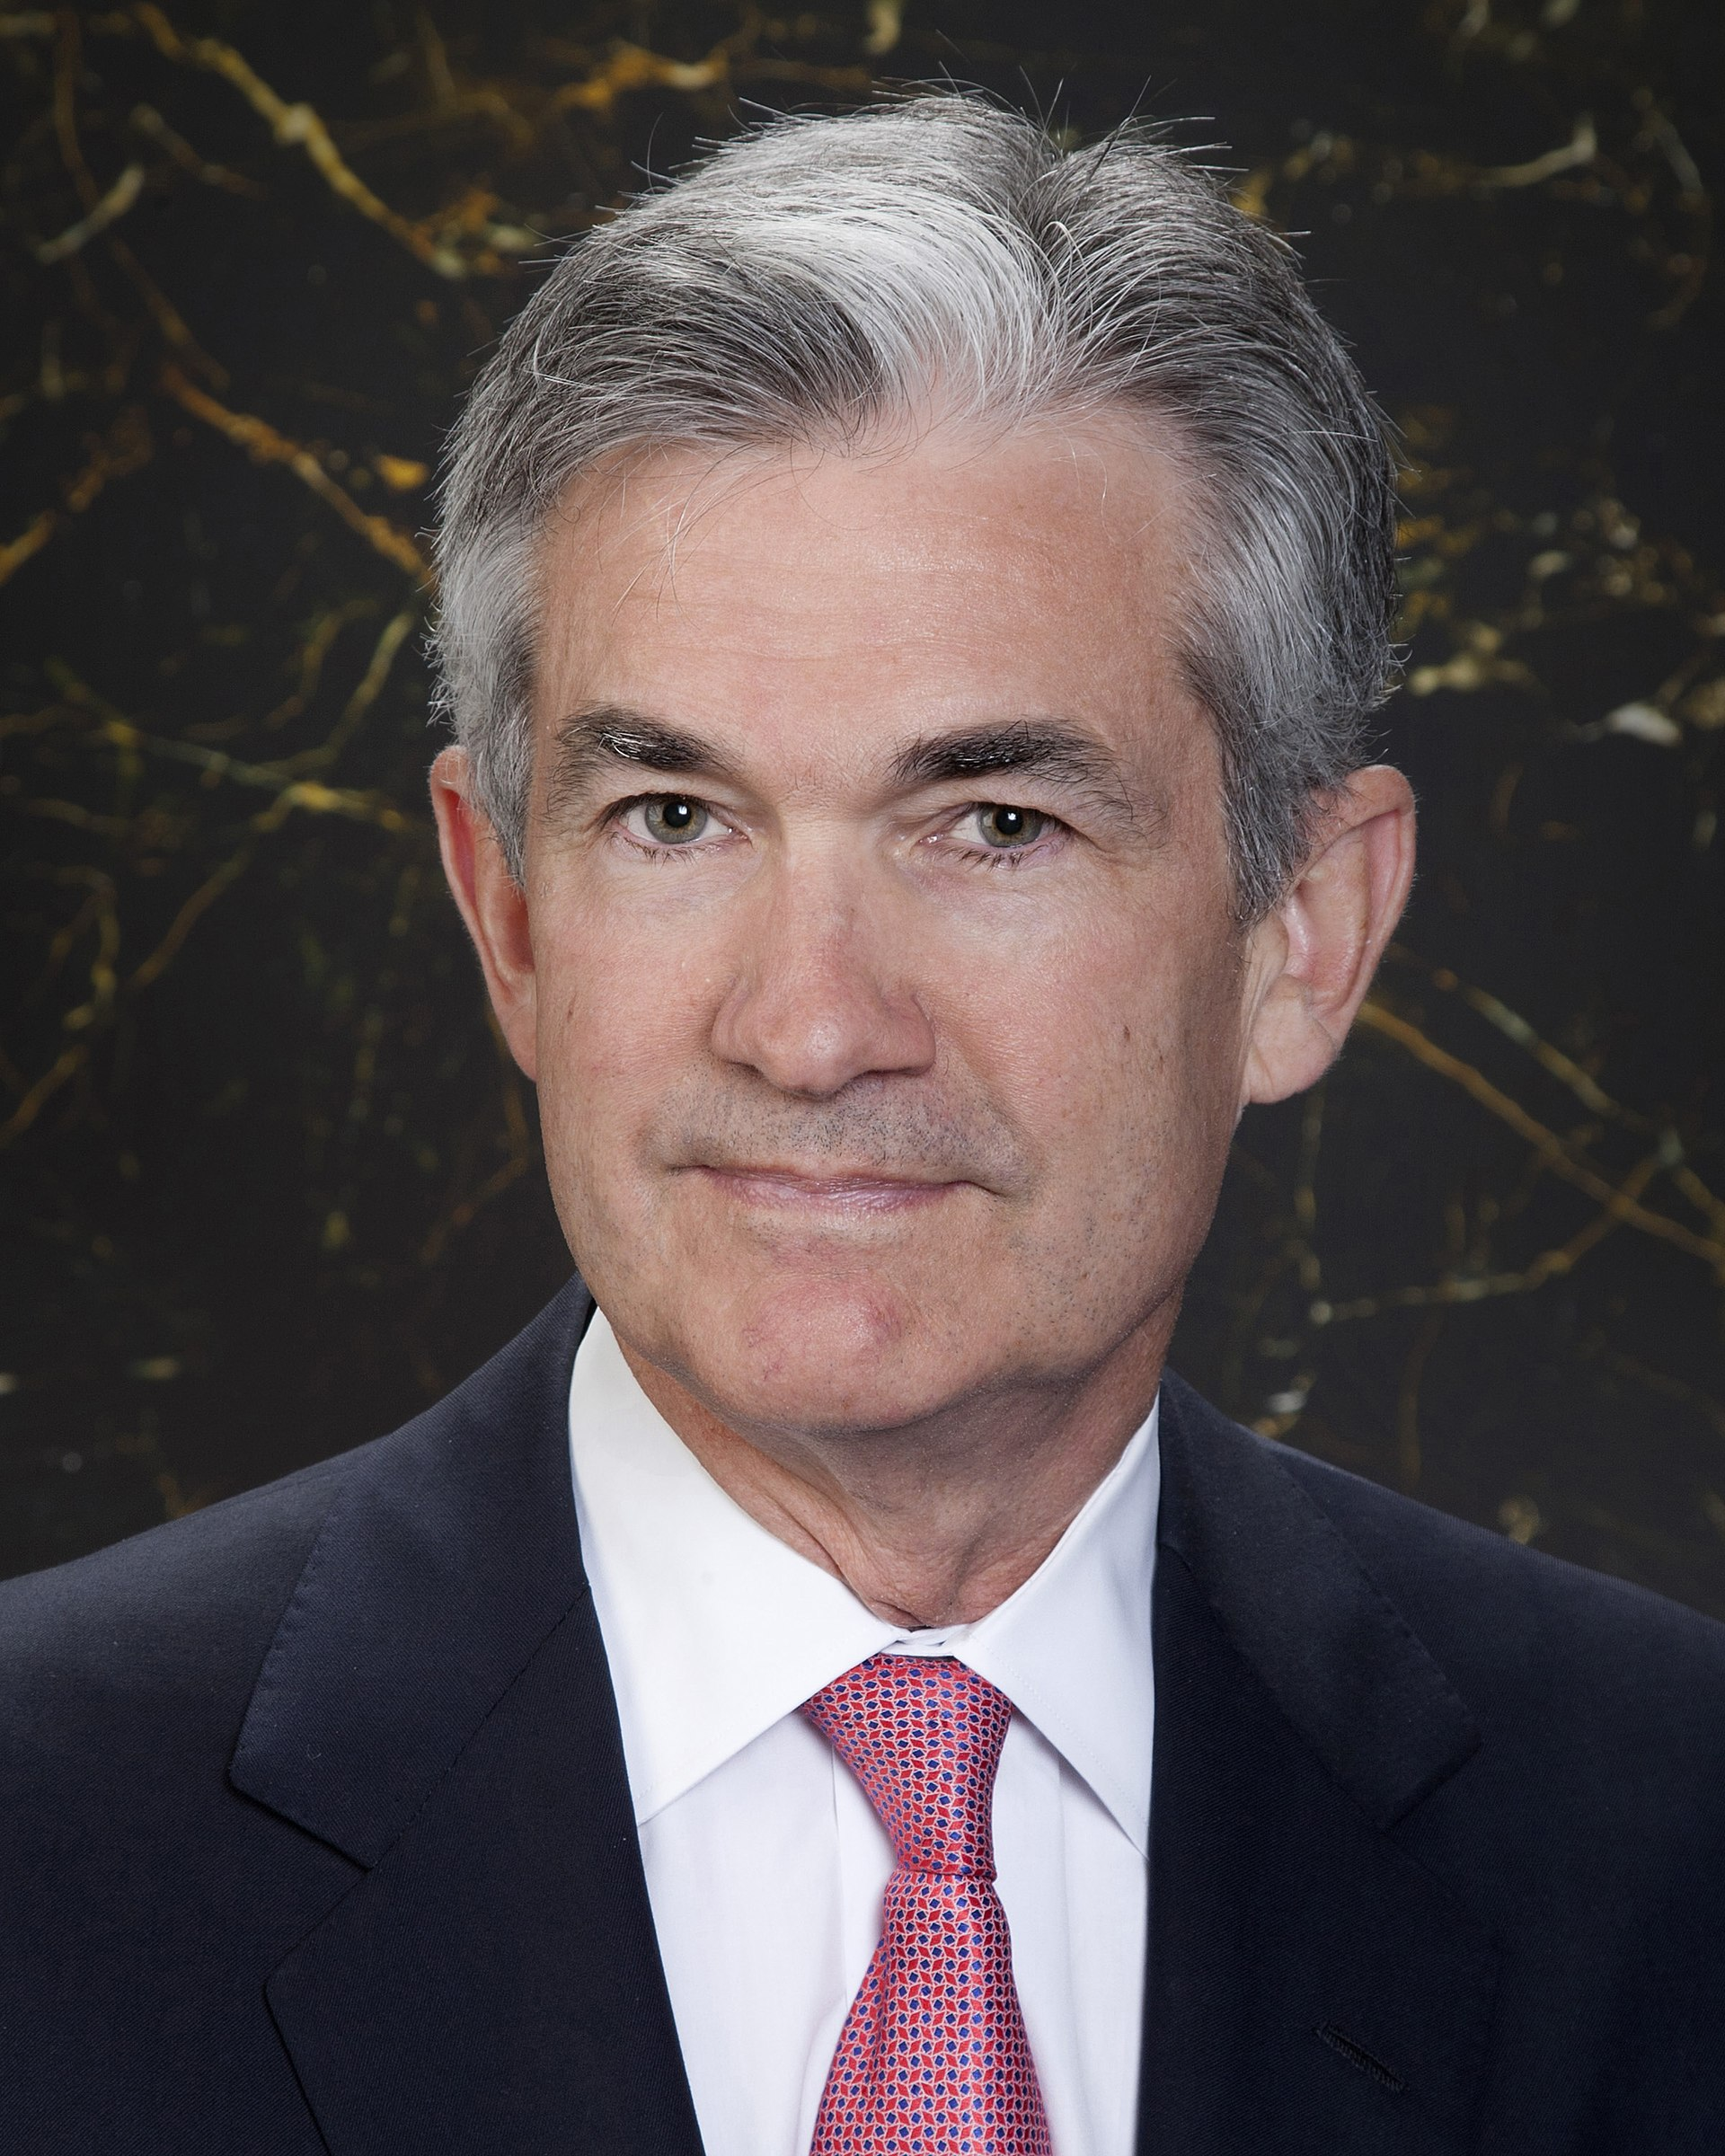 Jerome H Powell Wikipedia